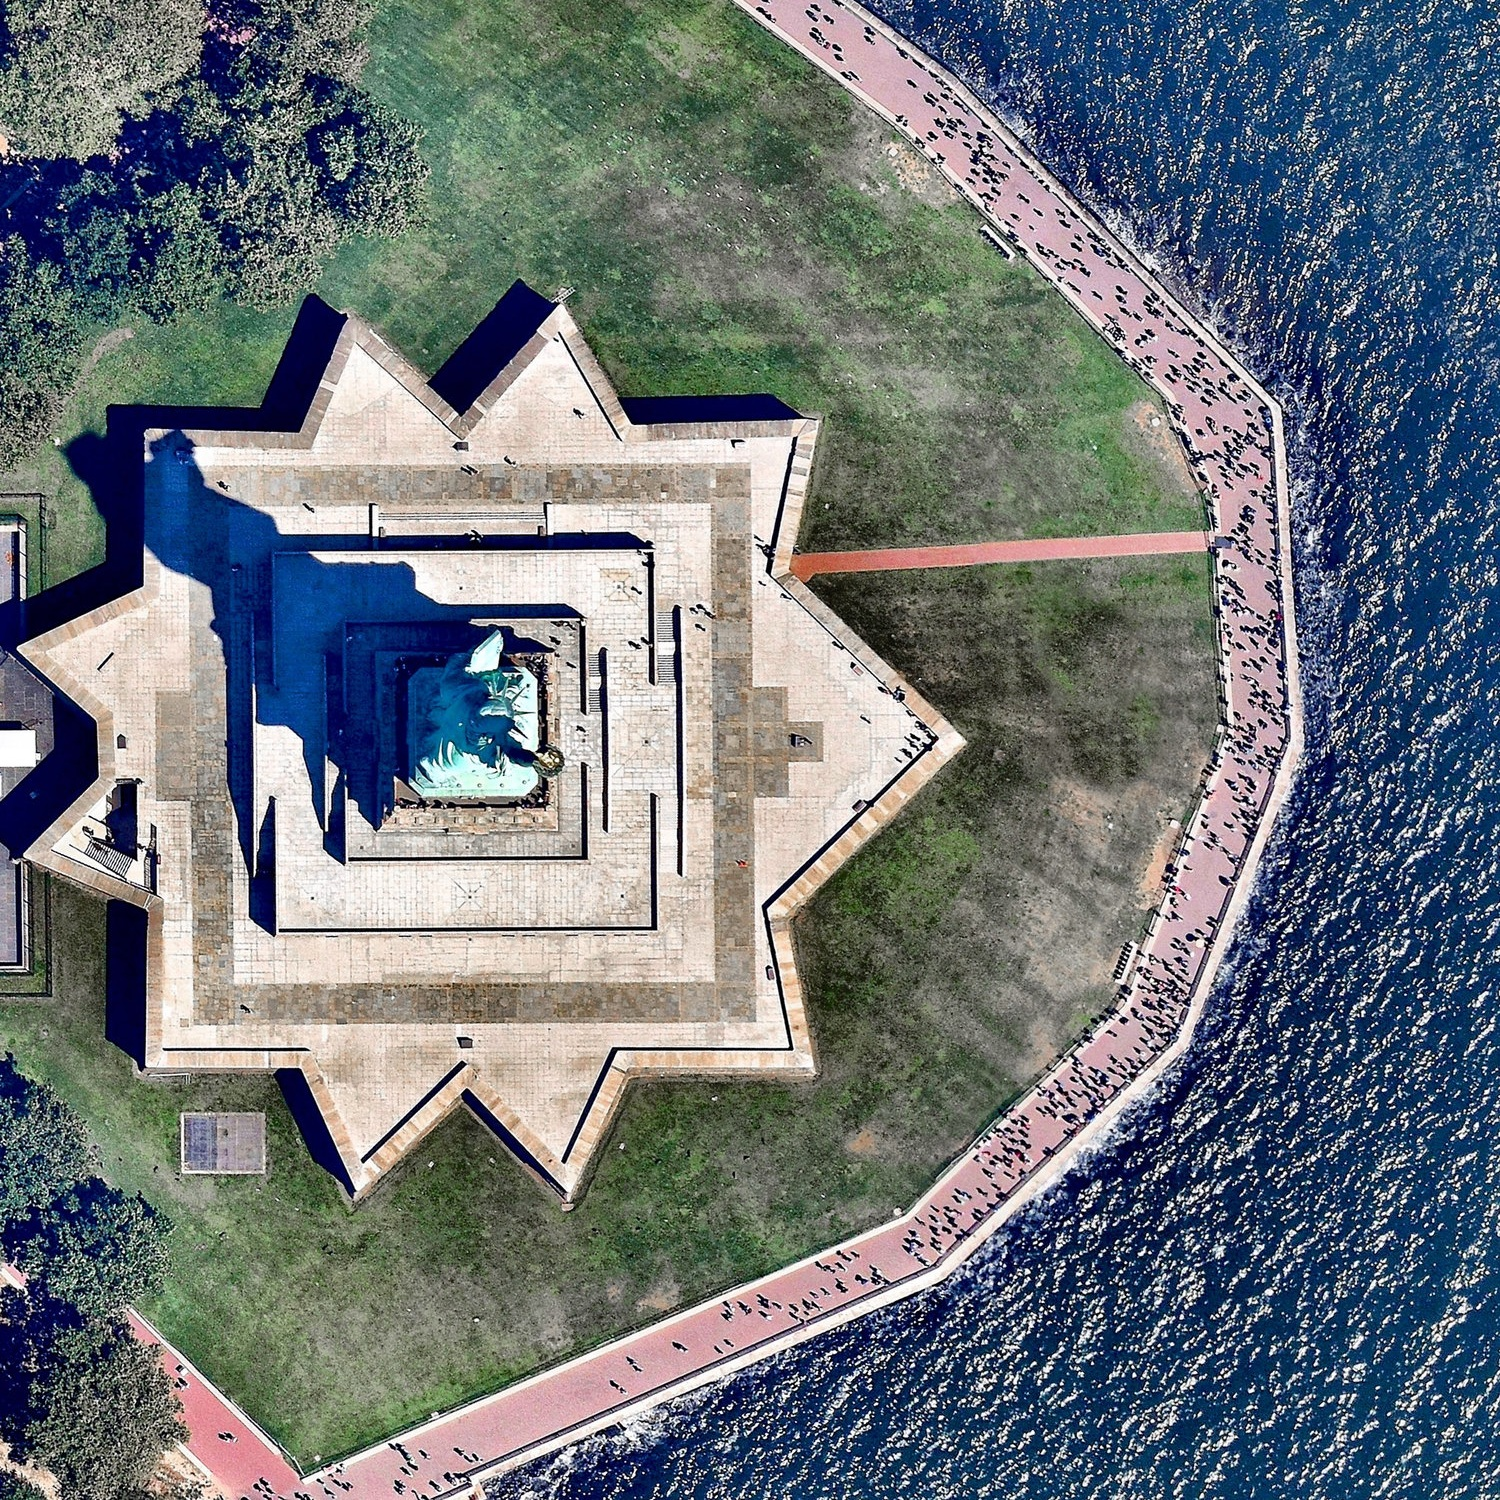 A shot of the Statue of Liberty from the DailyOverview